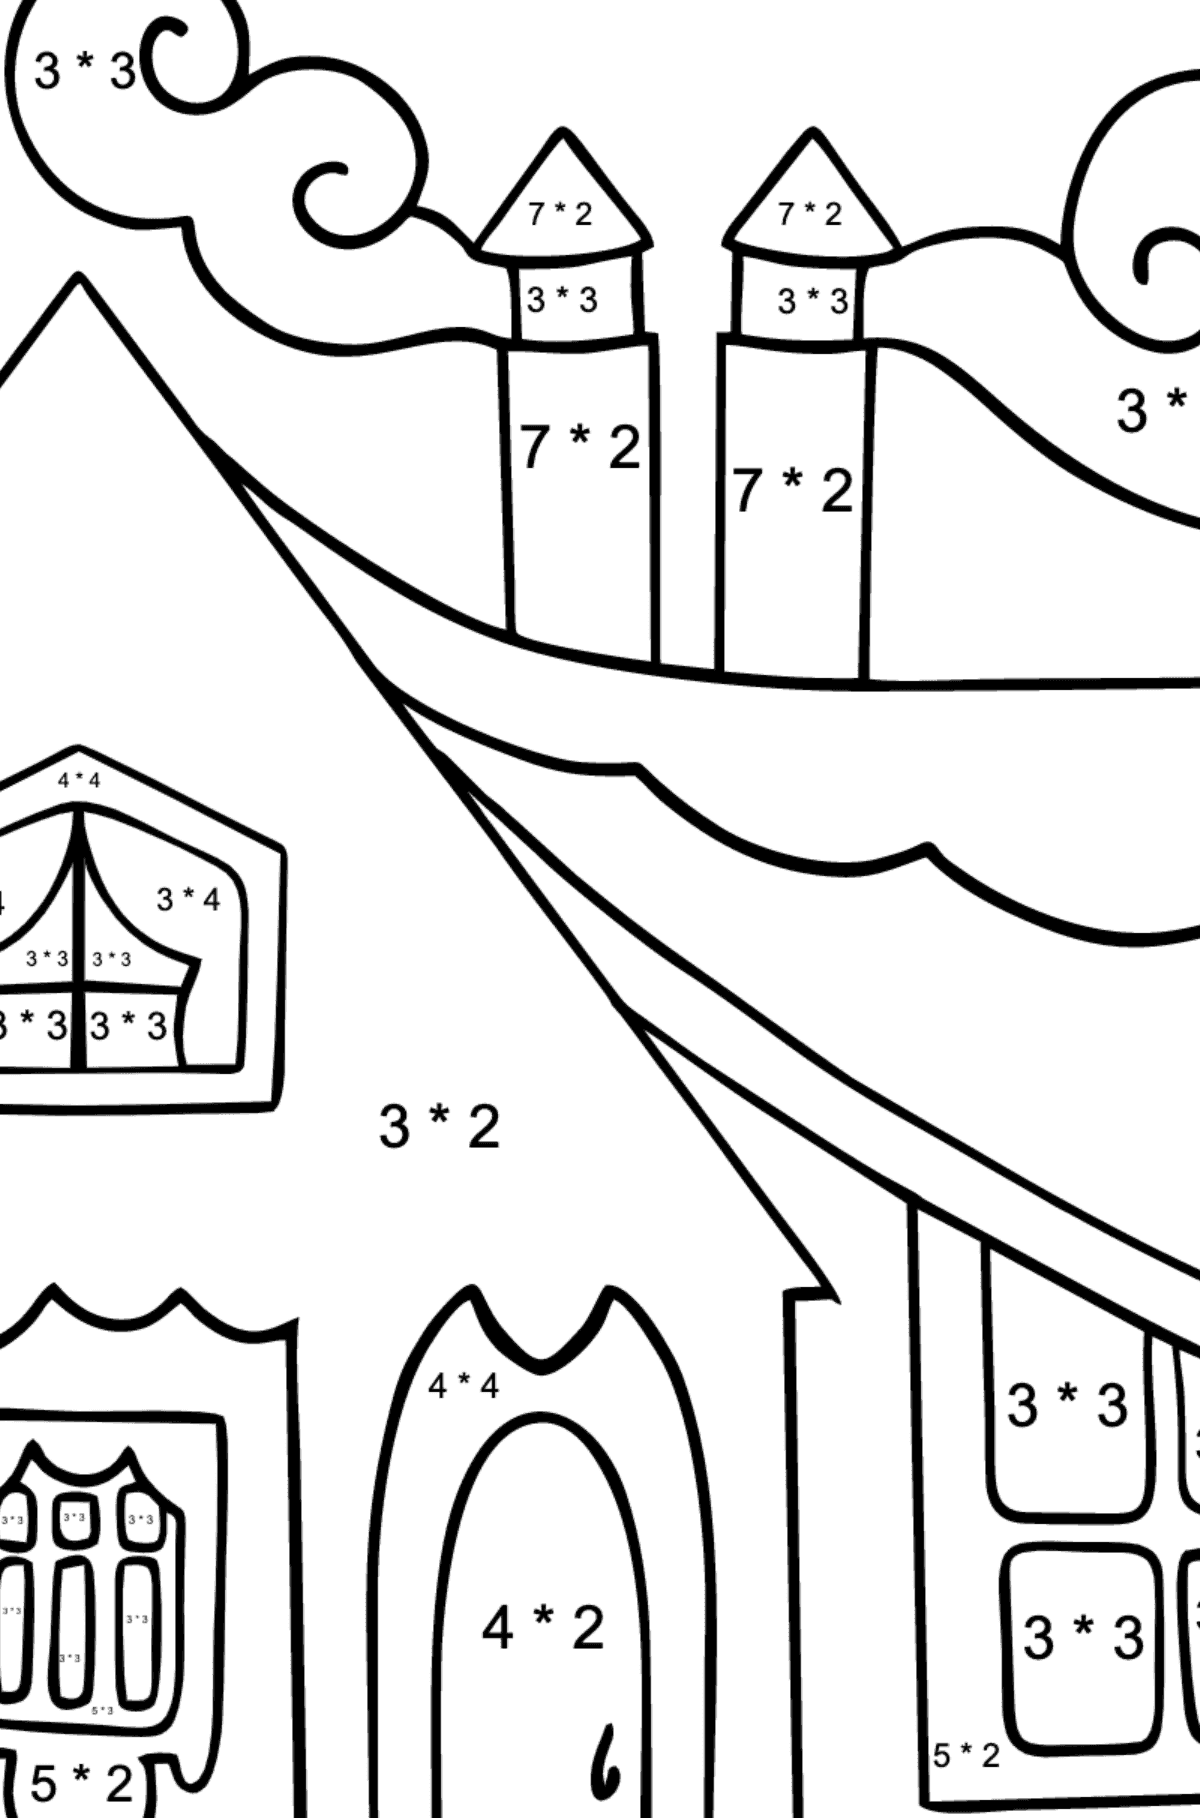 Simple Coloring Page - A Tiny House for Kids  - Color by Number Multiplication